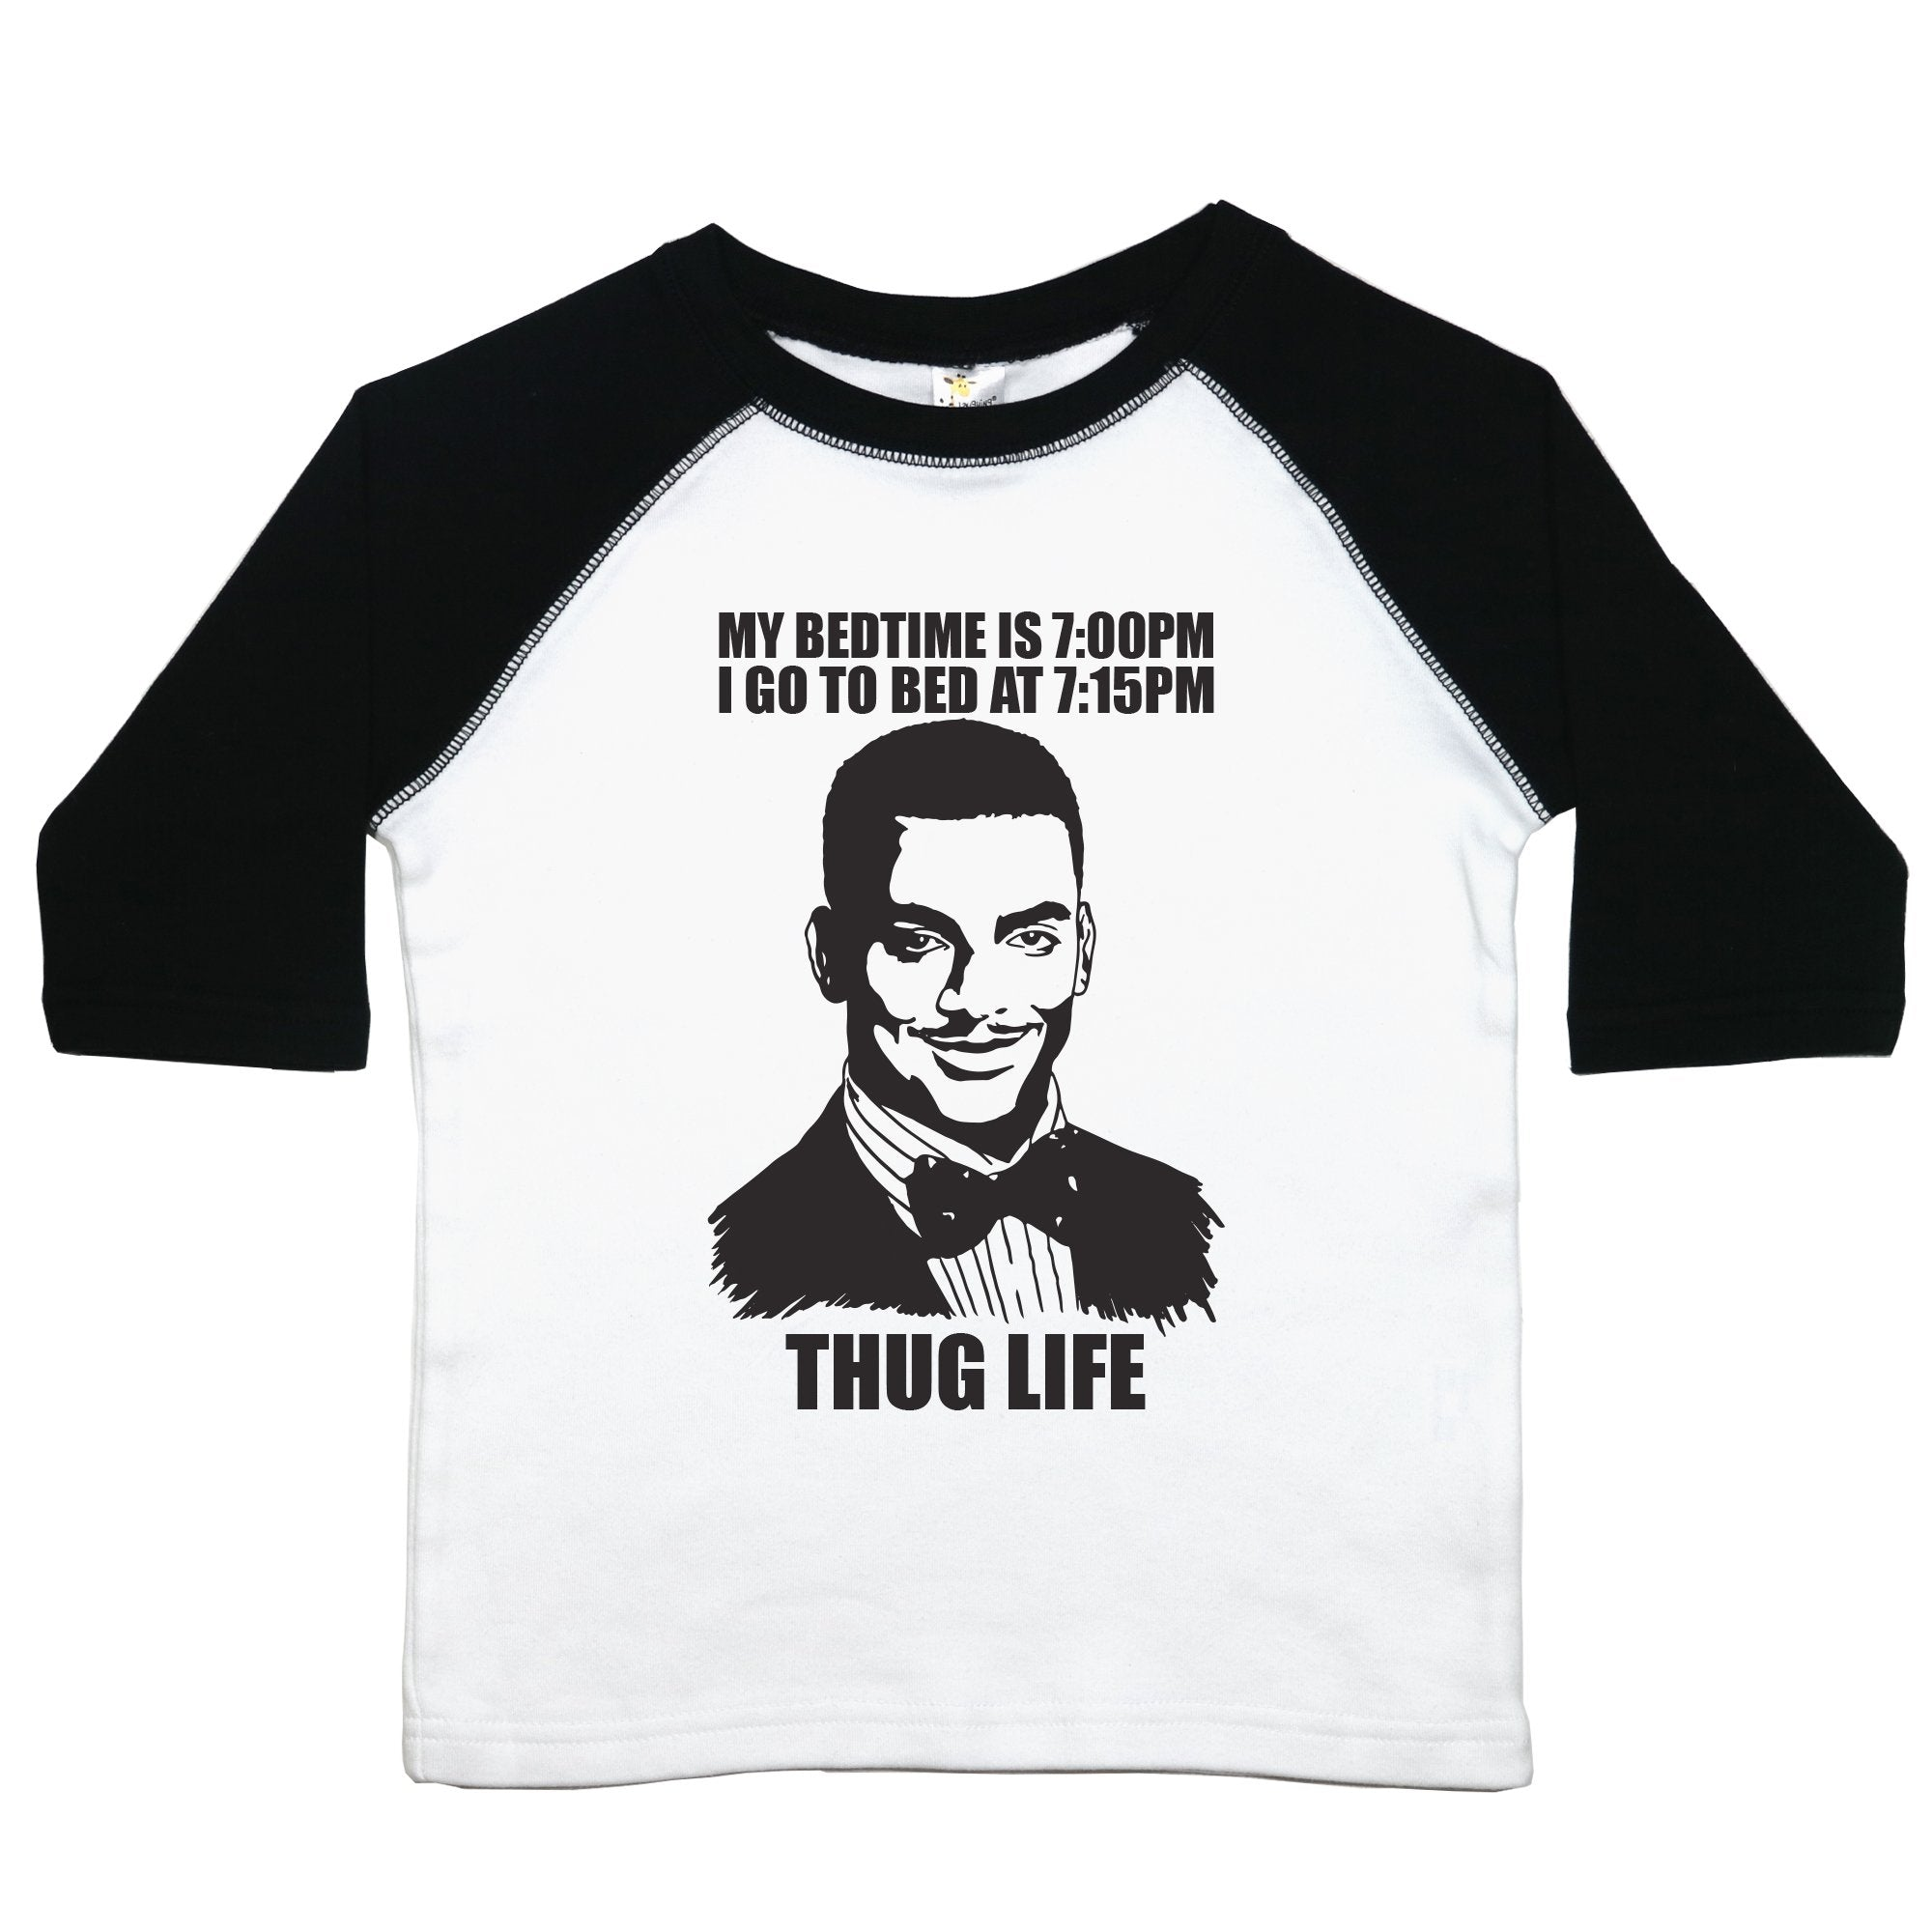 "Carlton from Fresh Prince of Bel-Air with the text ""My bedtime is at 7:00 pm, I go to bed at 7:15 pm. Thug Life."" on a baseball style tee for toddlers"